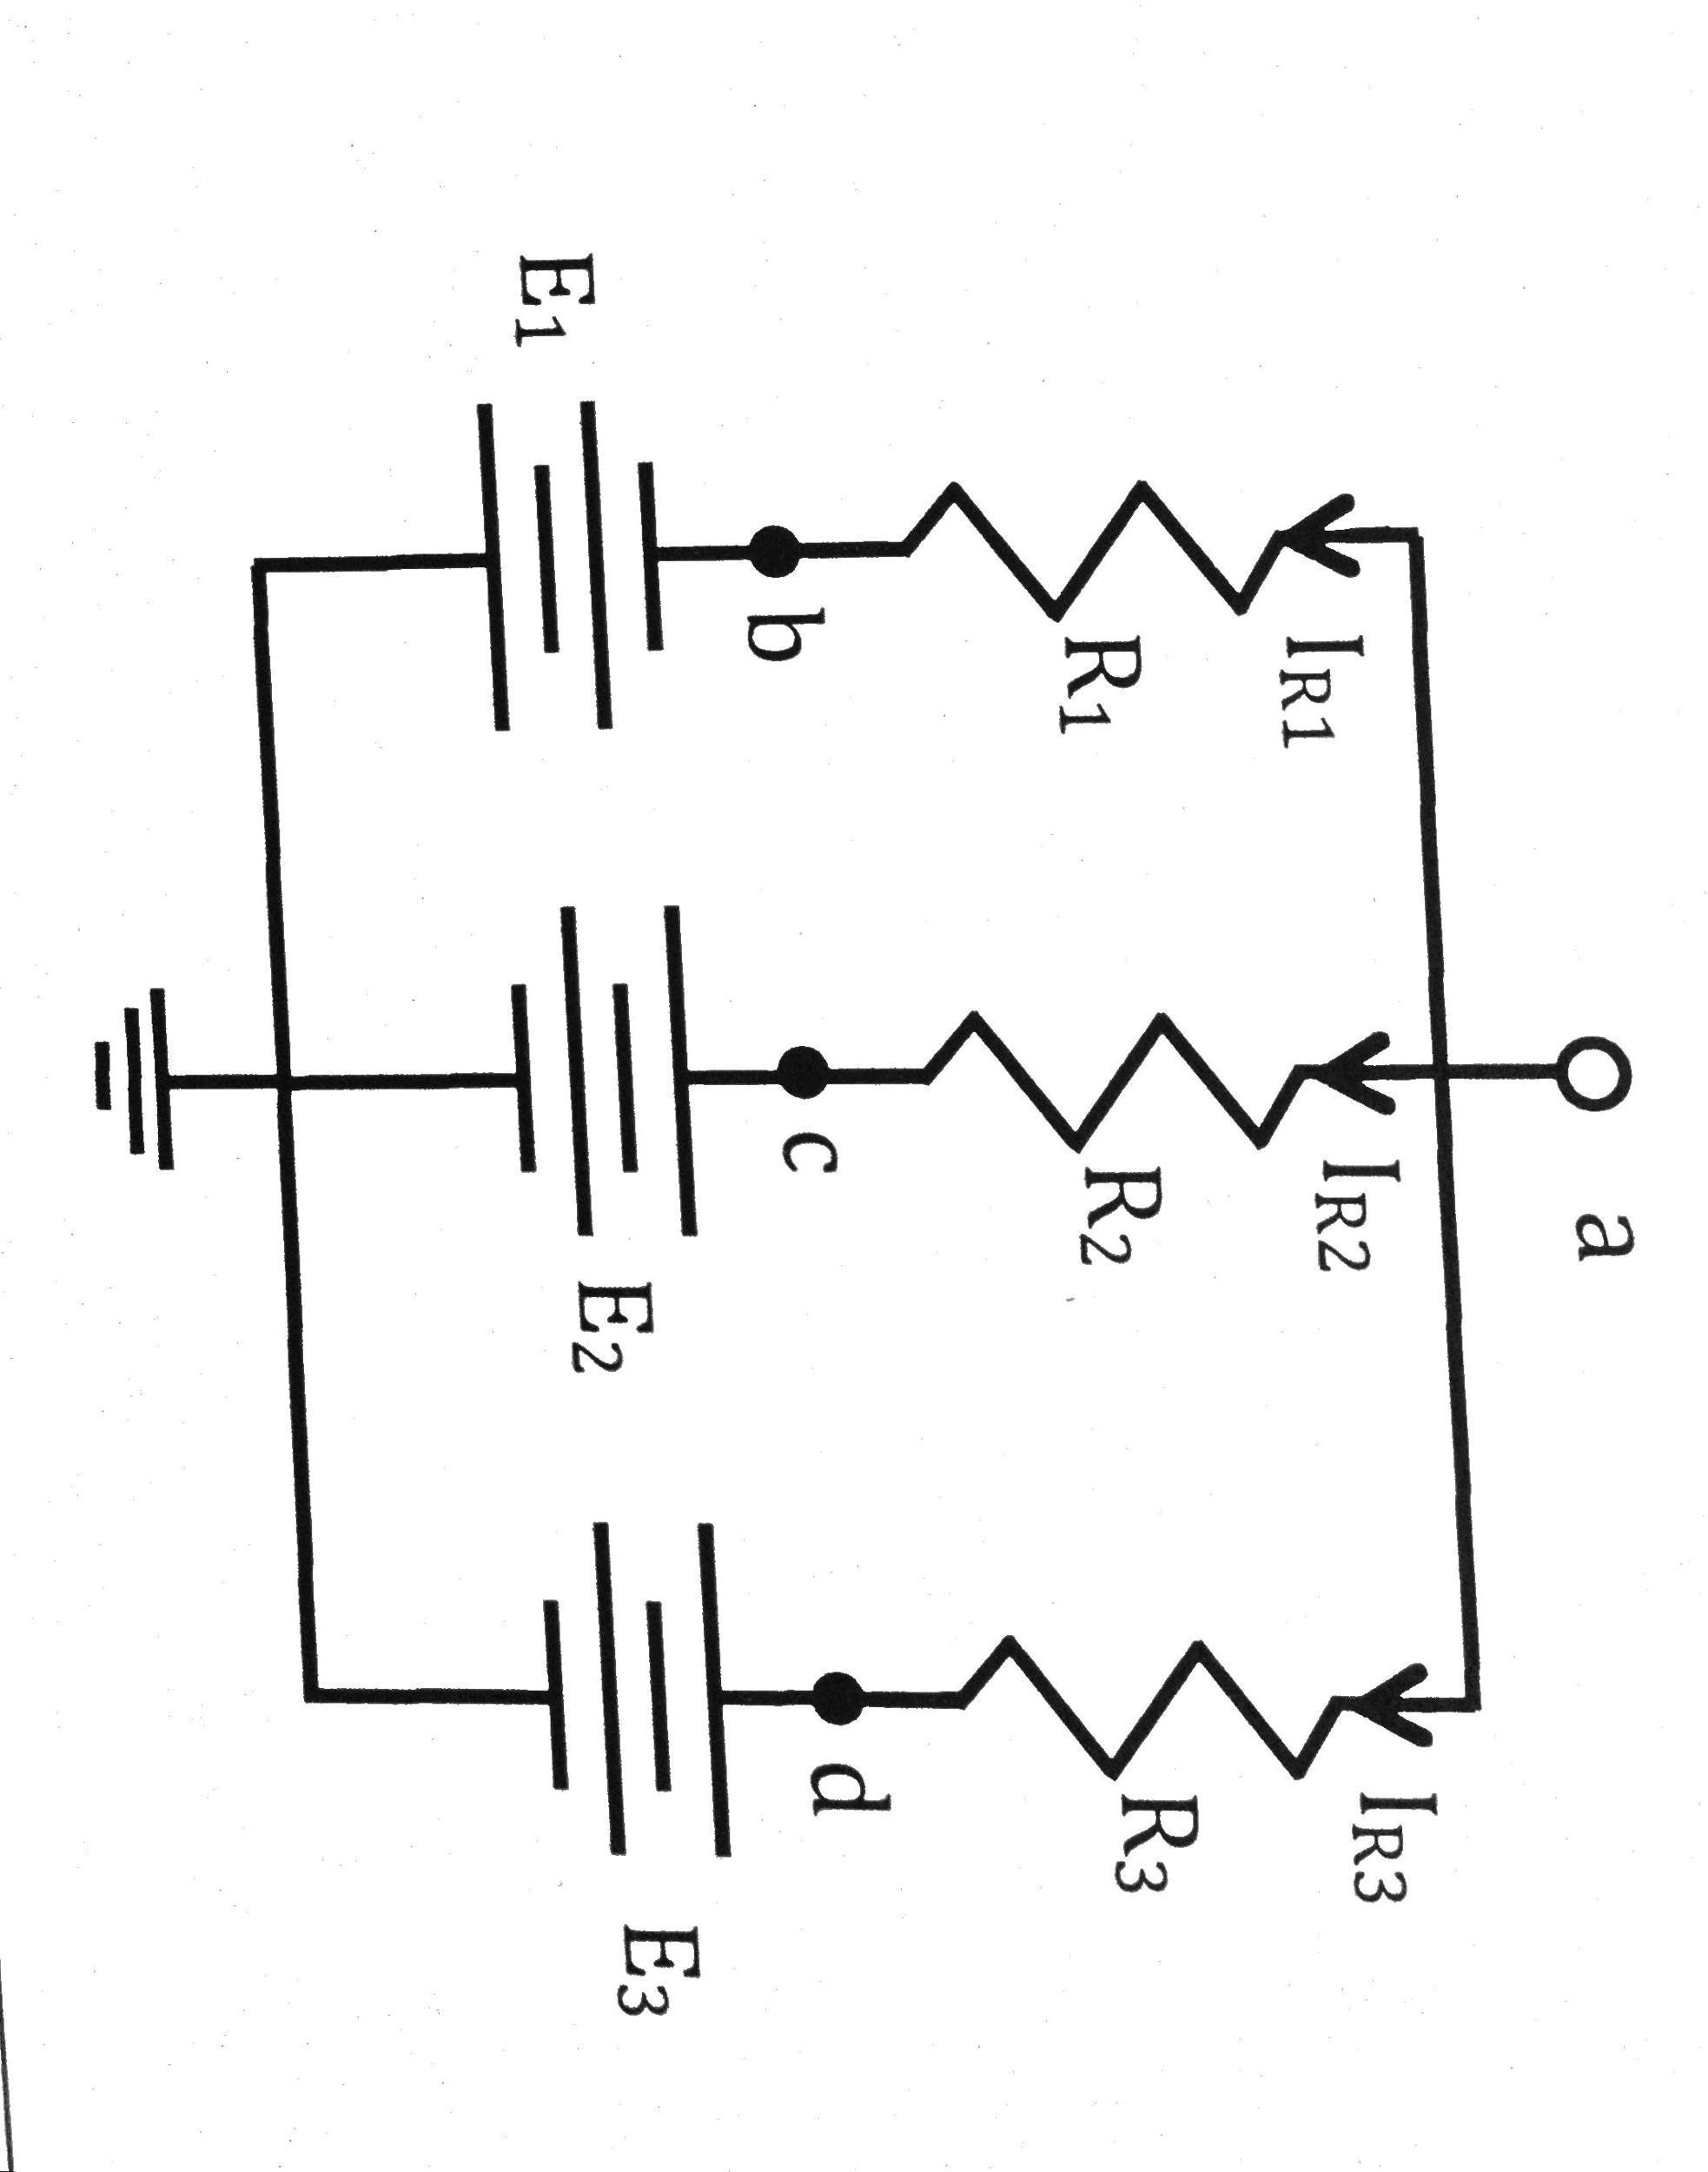 In figure 4, R1 = 2 Ohms and Vab = -1V. What is IR